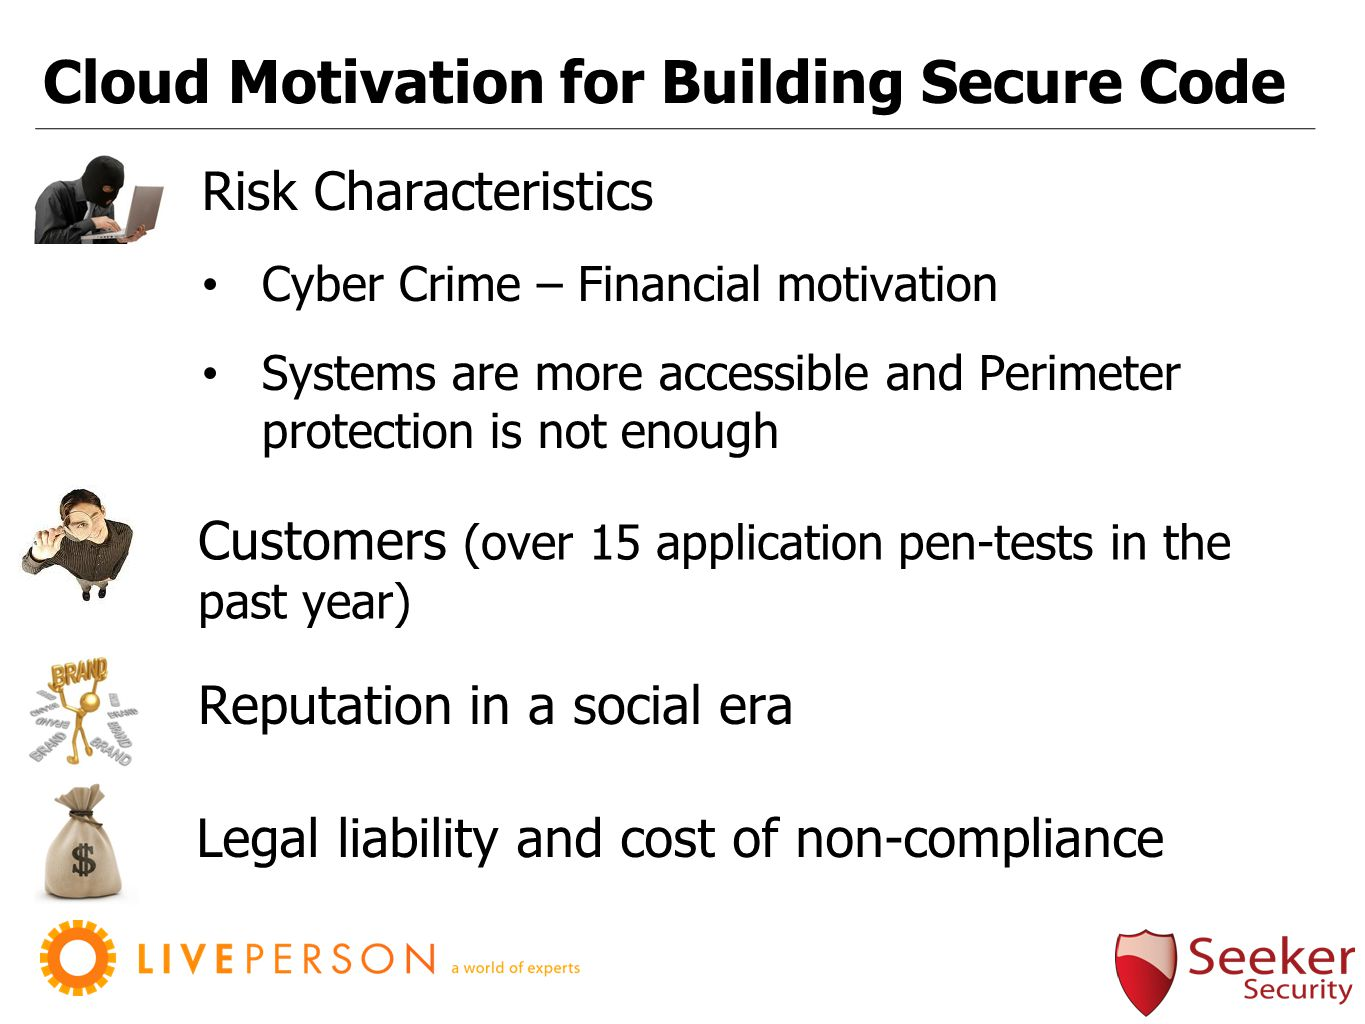 Cloud Motivation for Building Secure Code Reputation in a social era Risk Characteristics Cyber Crime – Financial motivation Systems are more accessible and Perimeter protection is not enough Legal liability and cost of non-compliance Customers (over 15 application pen-tests in the past year)